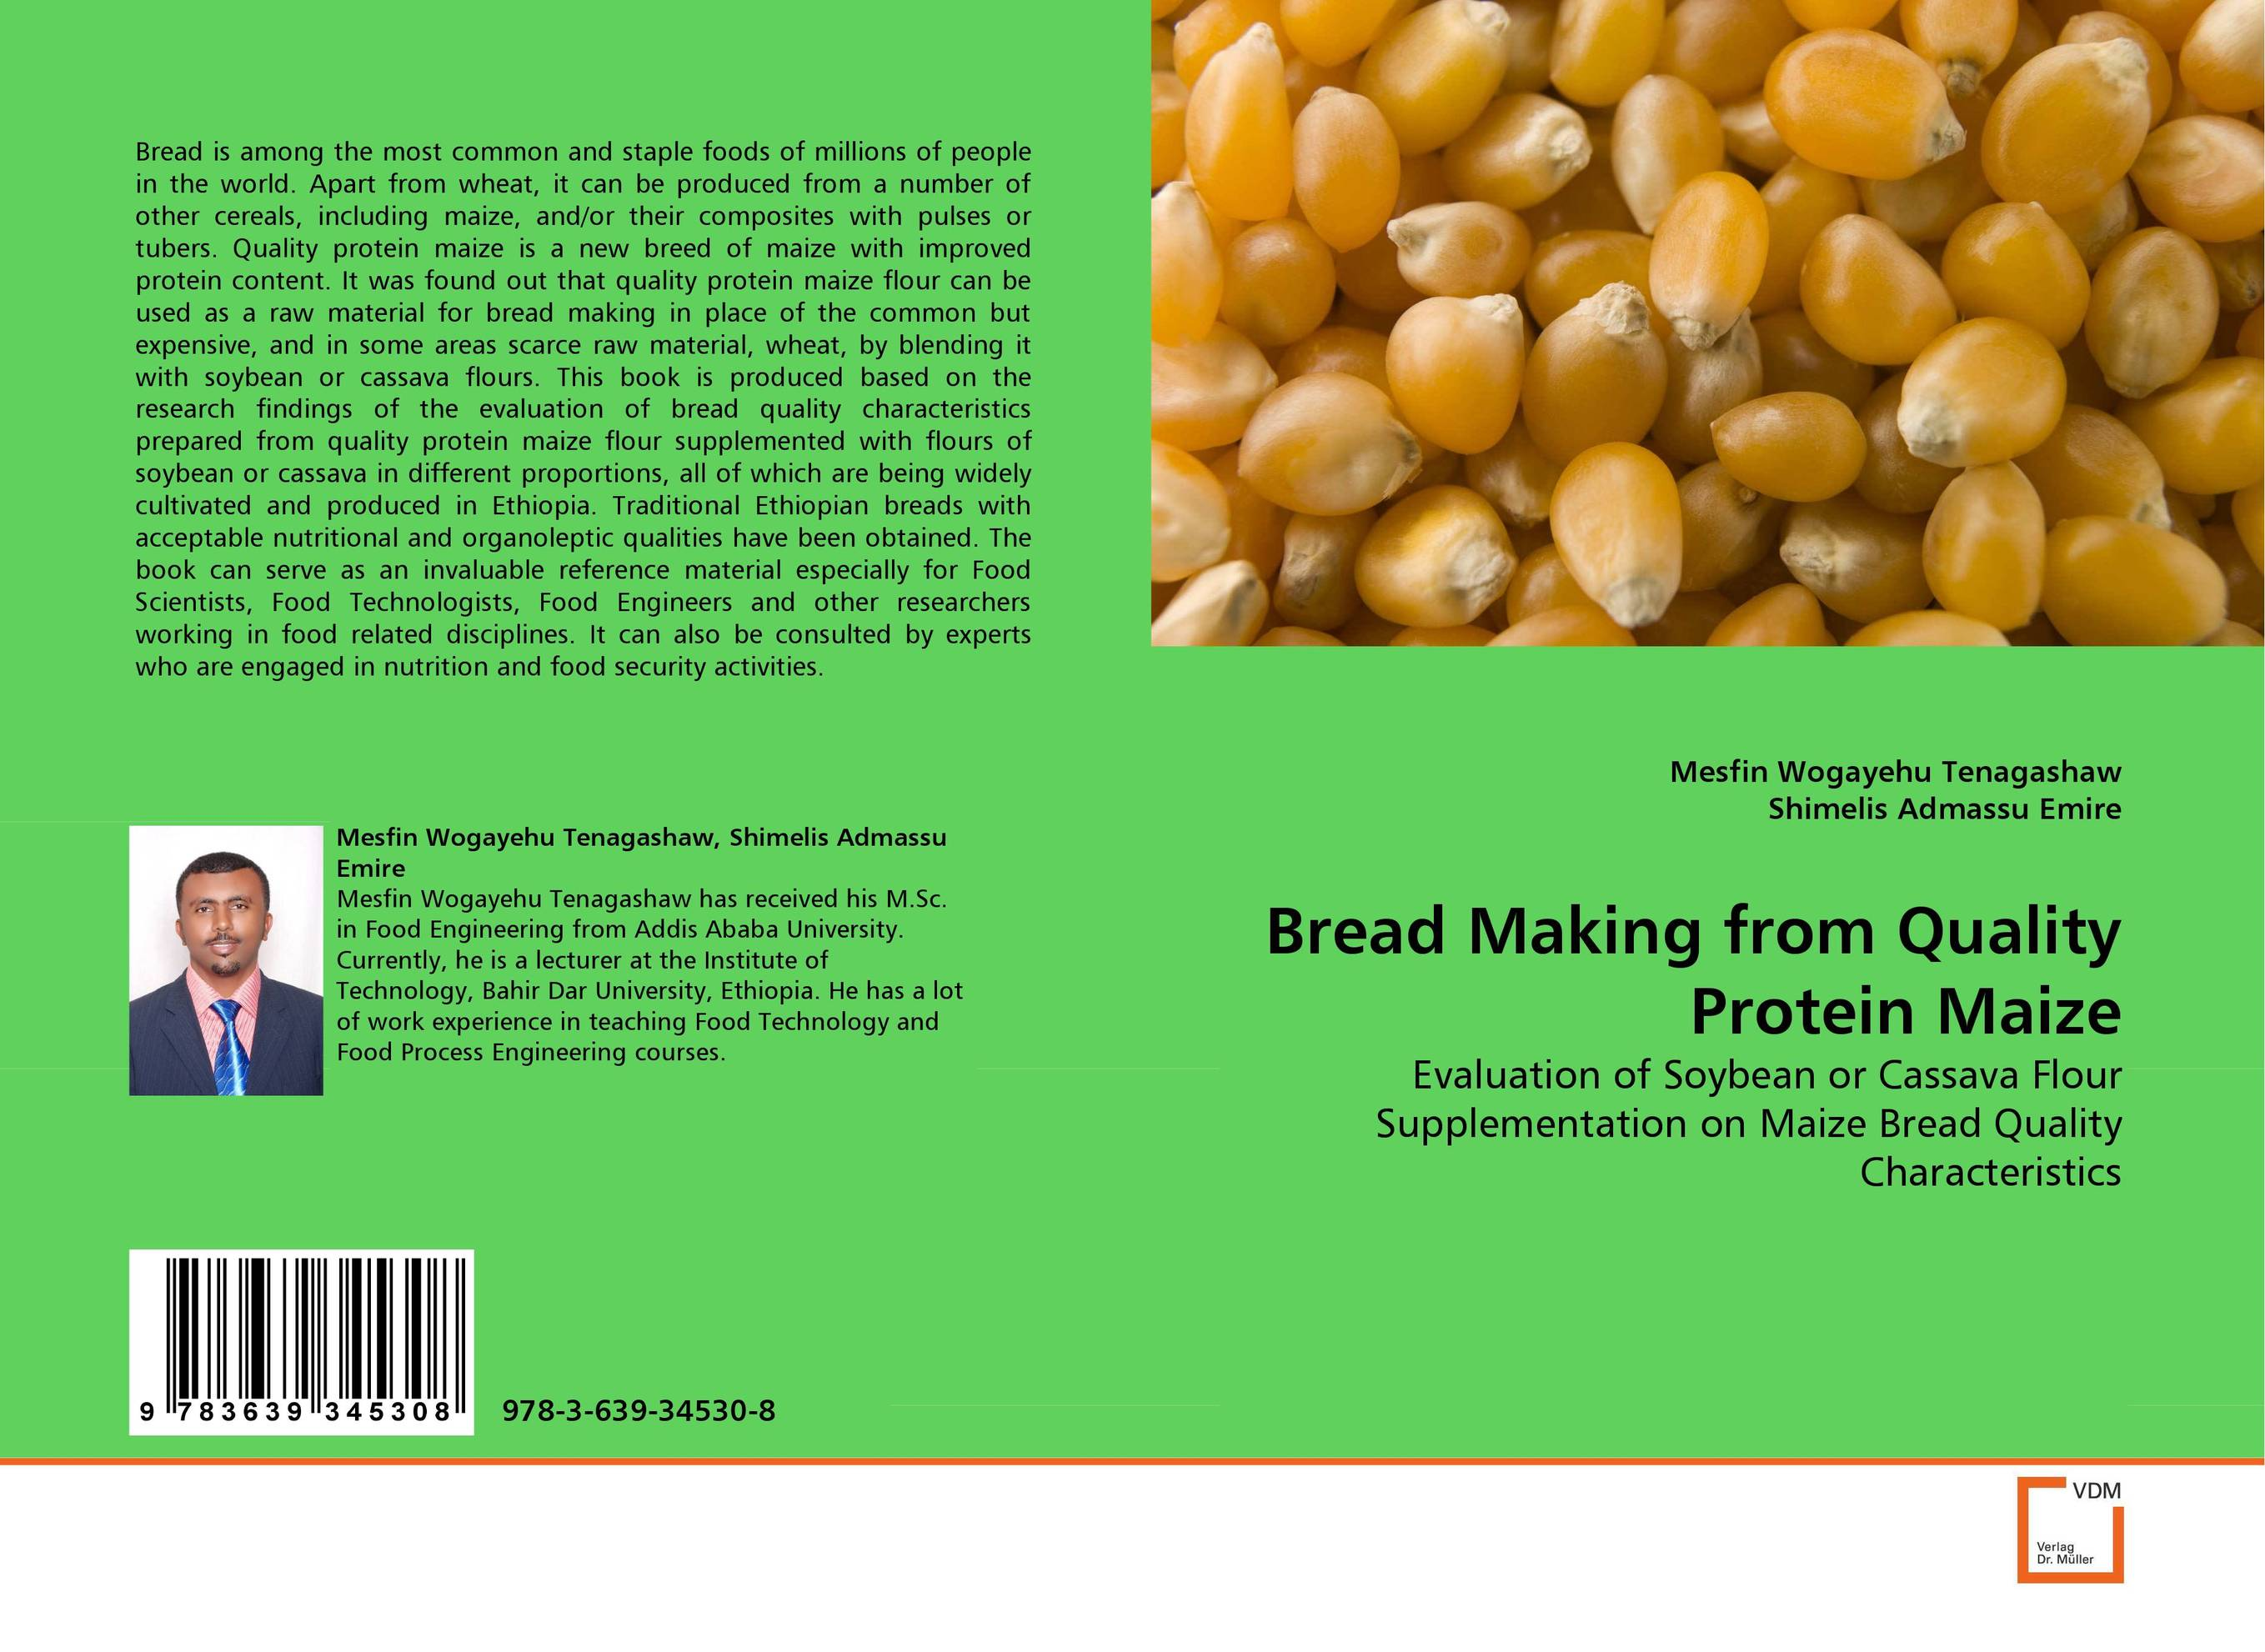 Bread Making from Quality Protein Maize